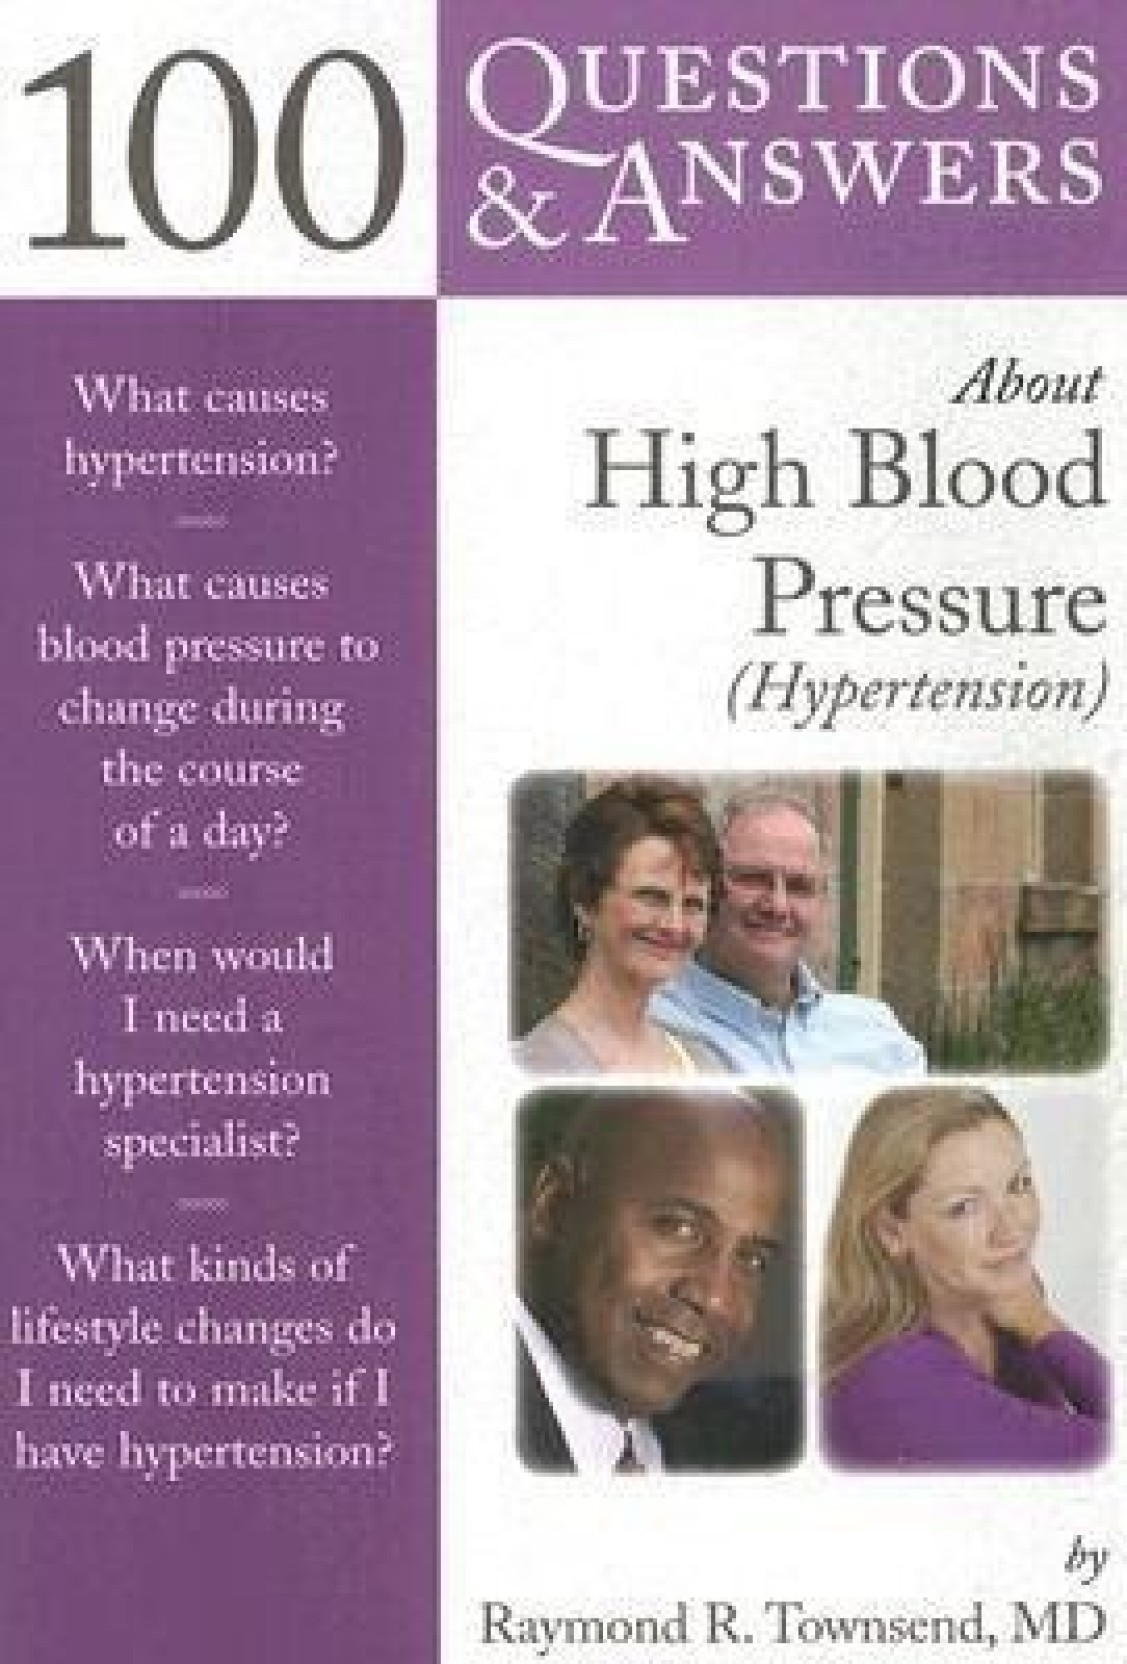 100 Questions & Answers about High Blood Pressure (Hypertension). Share